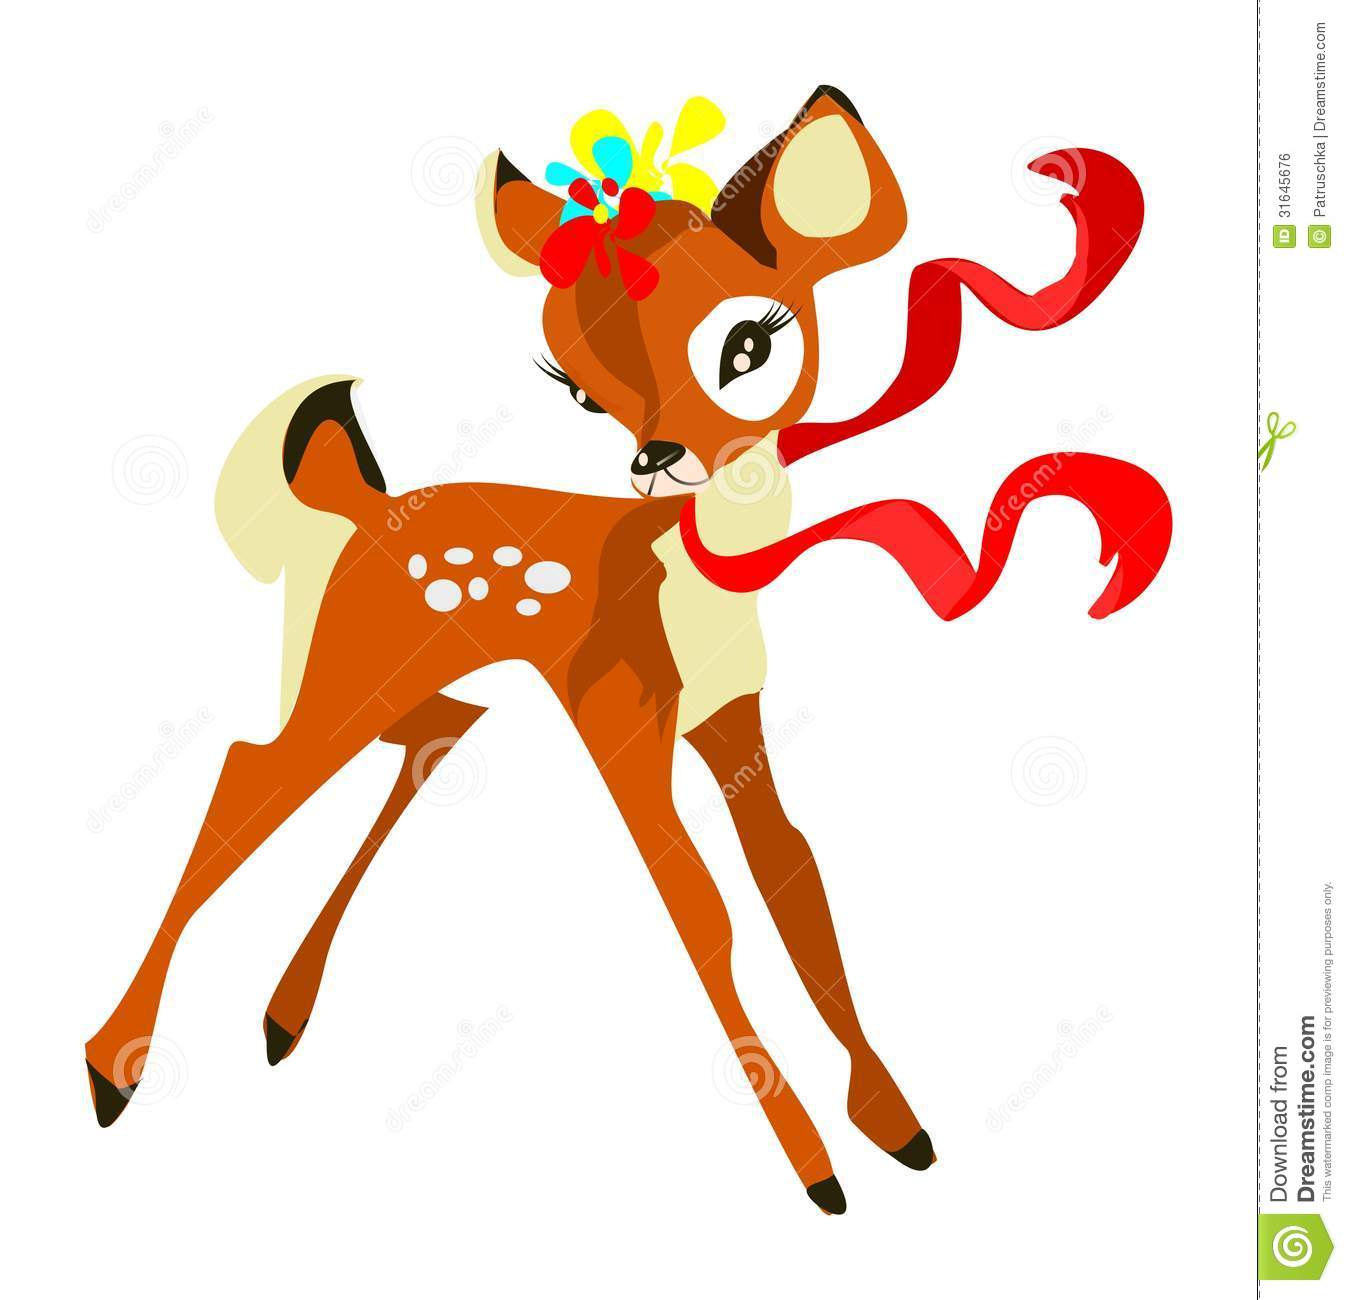 cute rudolph clipart at getdrawings com free for personal use cute rh getdrawings com cute reindeer clipart black and white cute reindeer clipart free